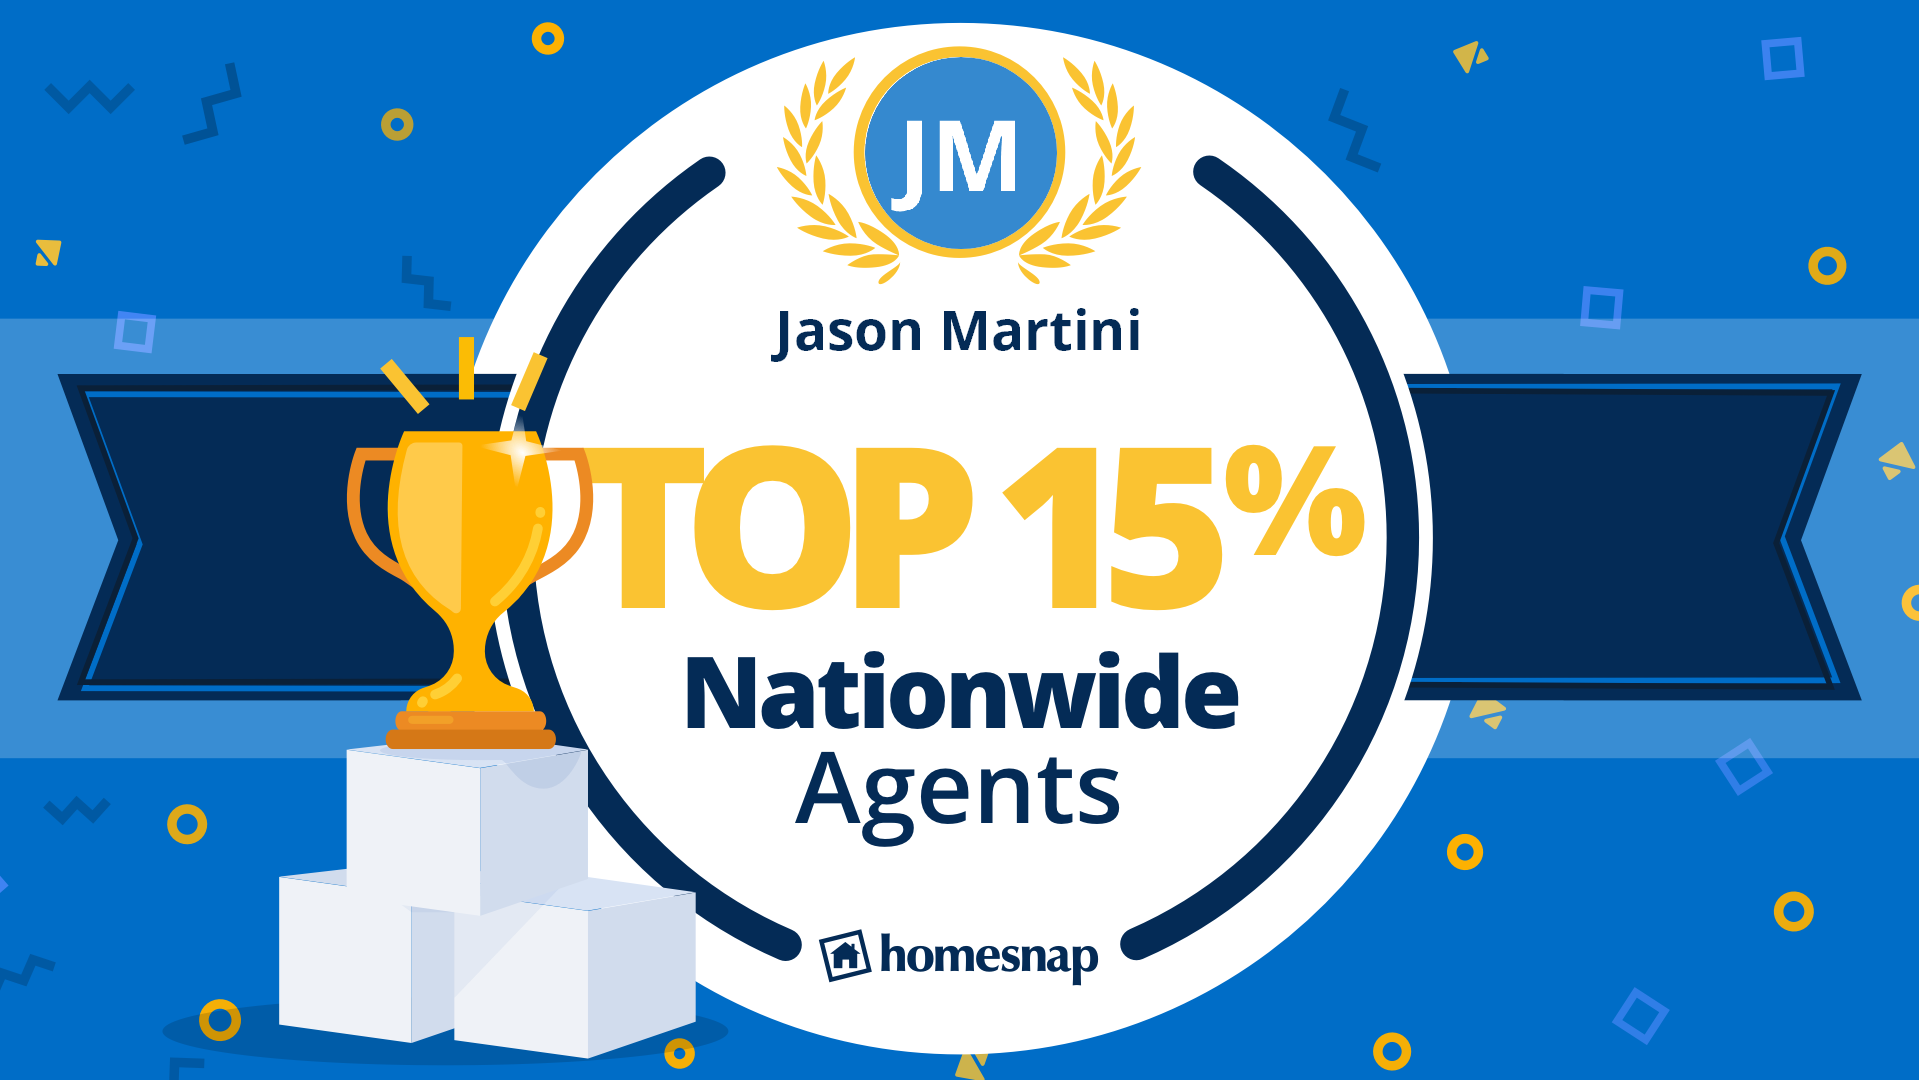 Jason Martini is Top 15% Nationwide Agent